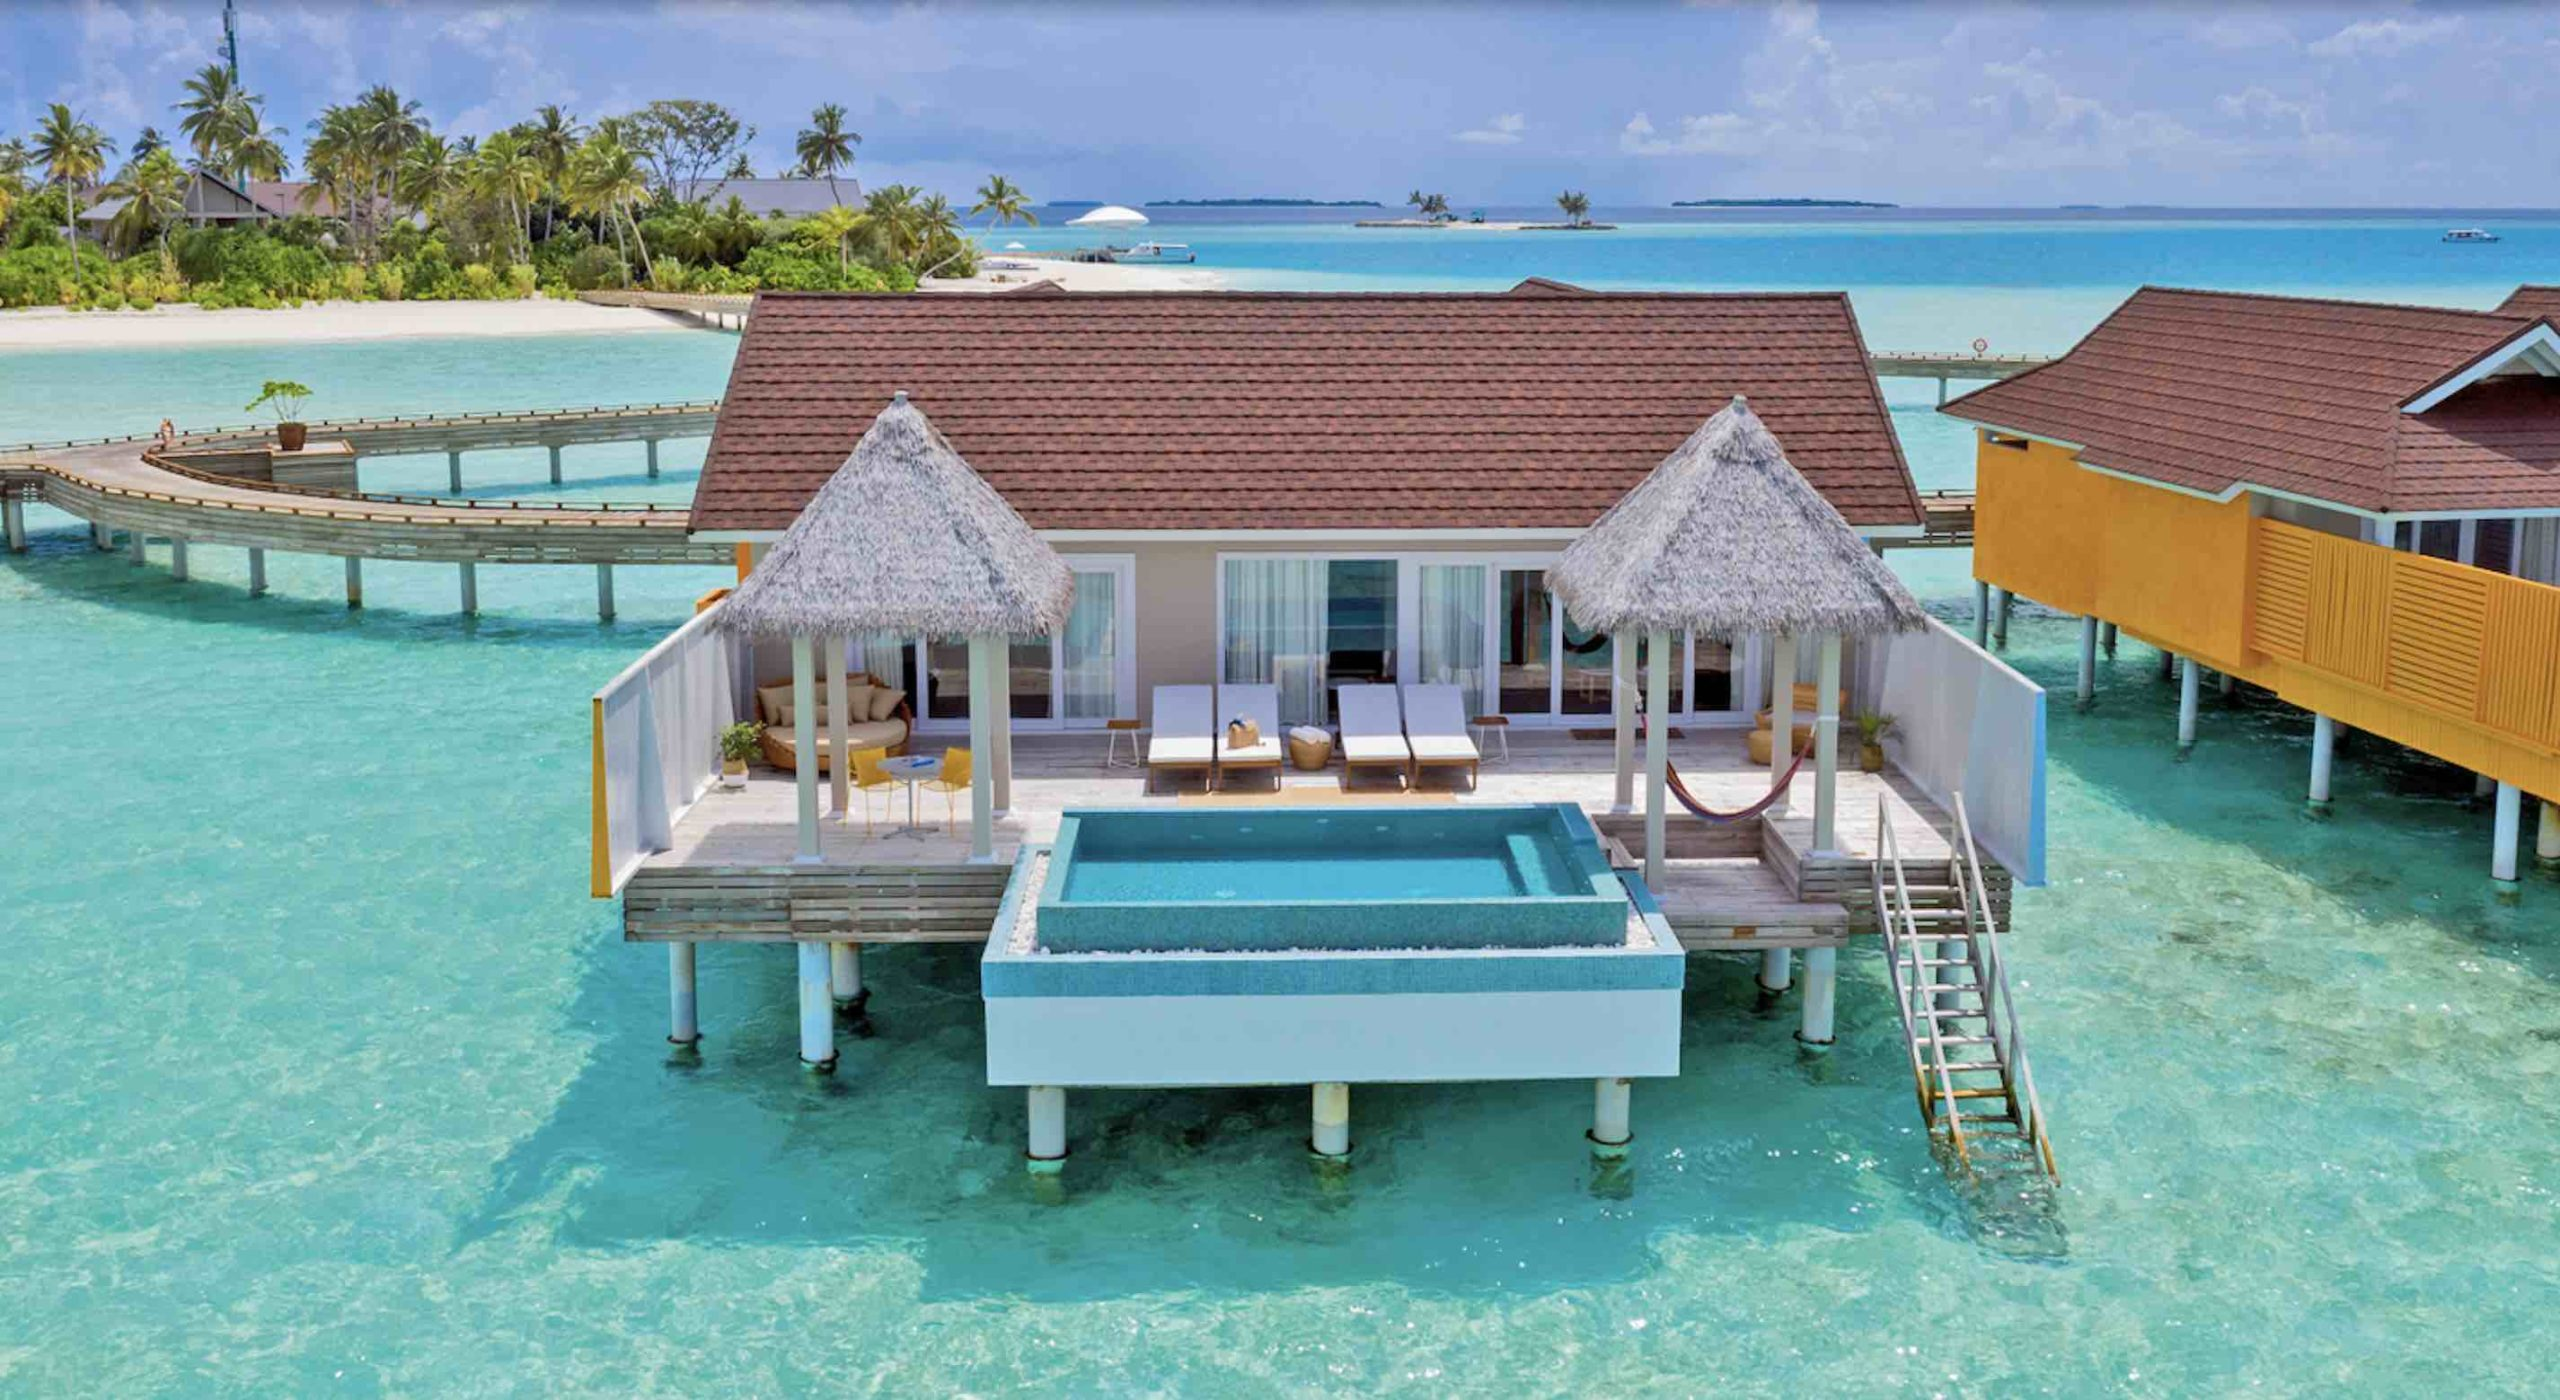 Hot Deal: Maldives Luxury For $300 Per Night Including Breakfast!